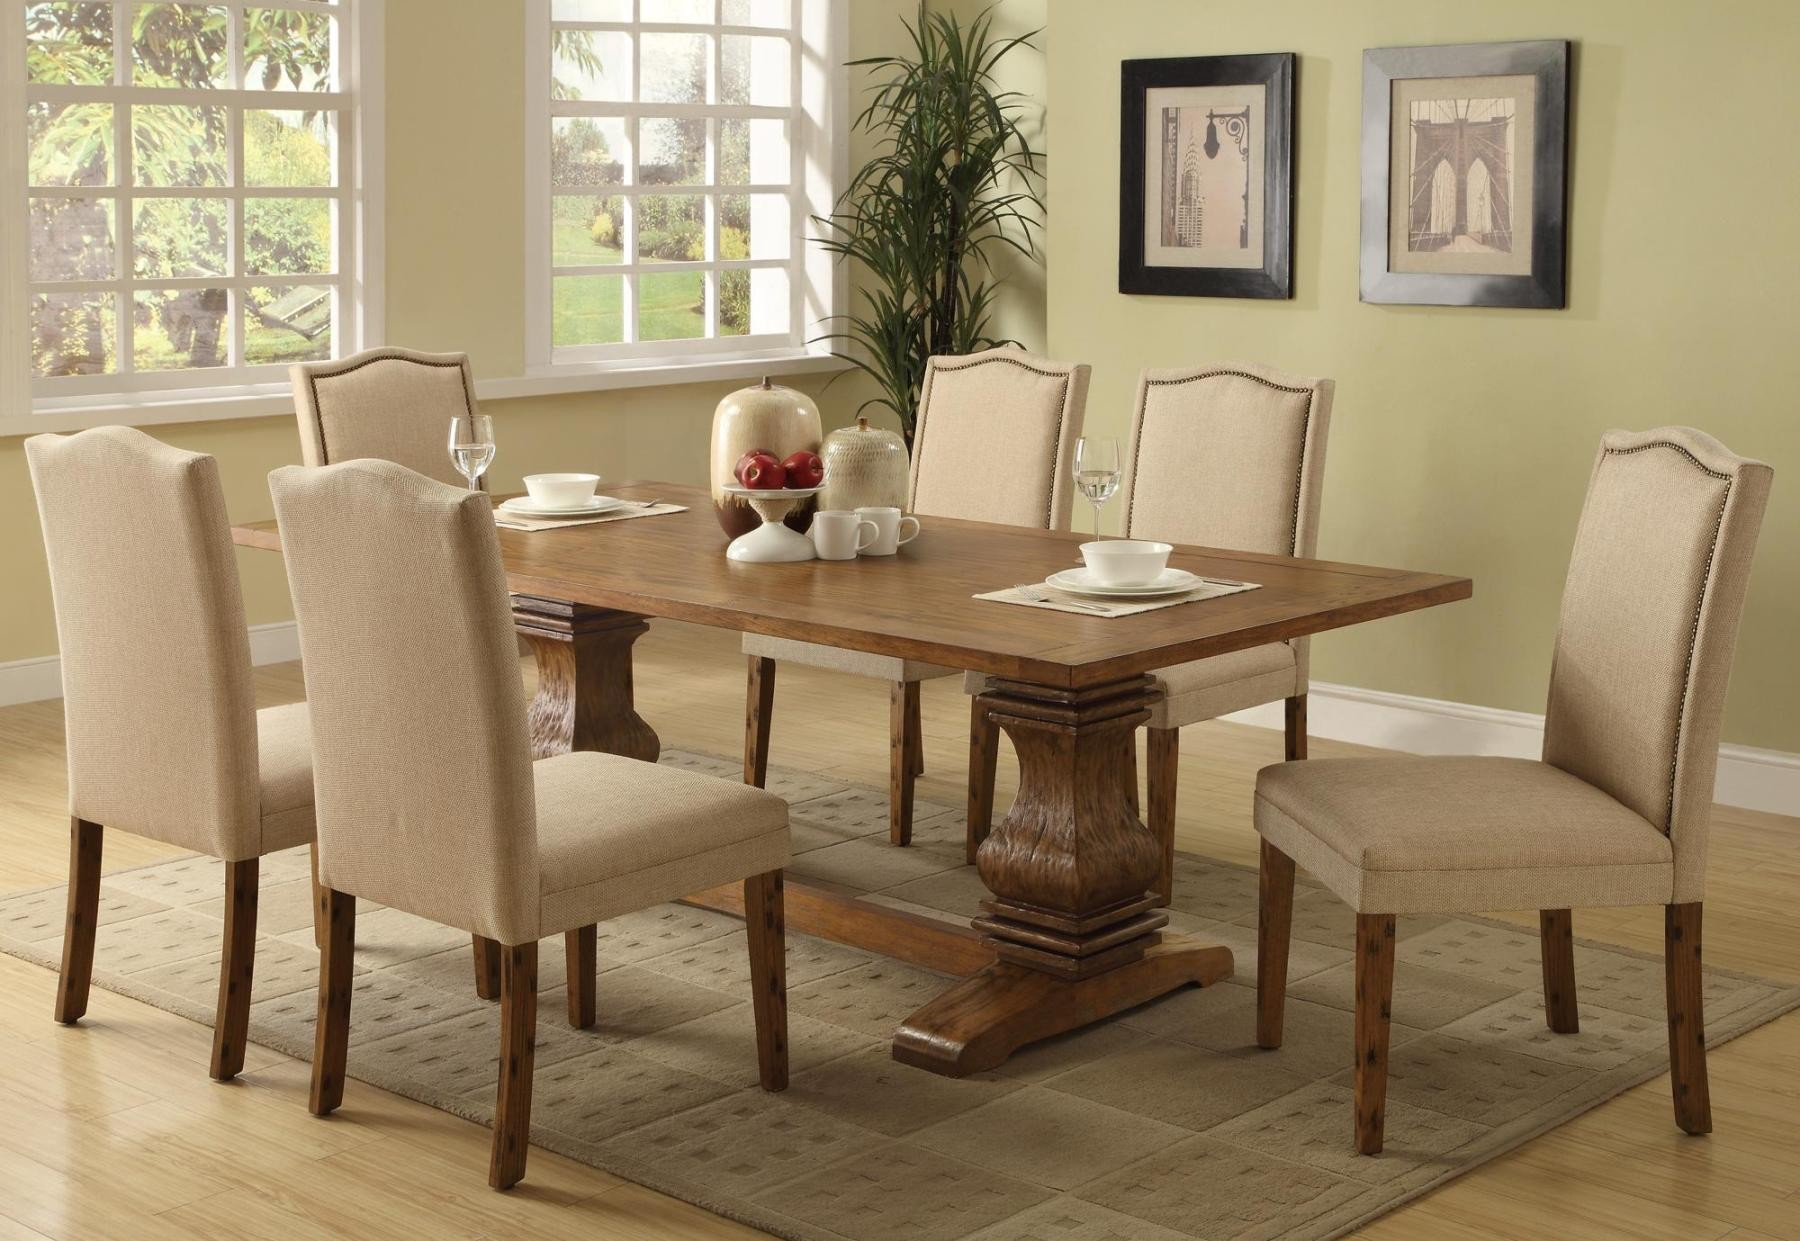 parkins cappuccino rectangular dining room set from coaster coleman furniture. Black Bedroom Furniture Sets. Home Design Ideas